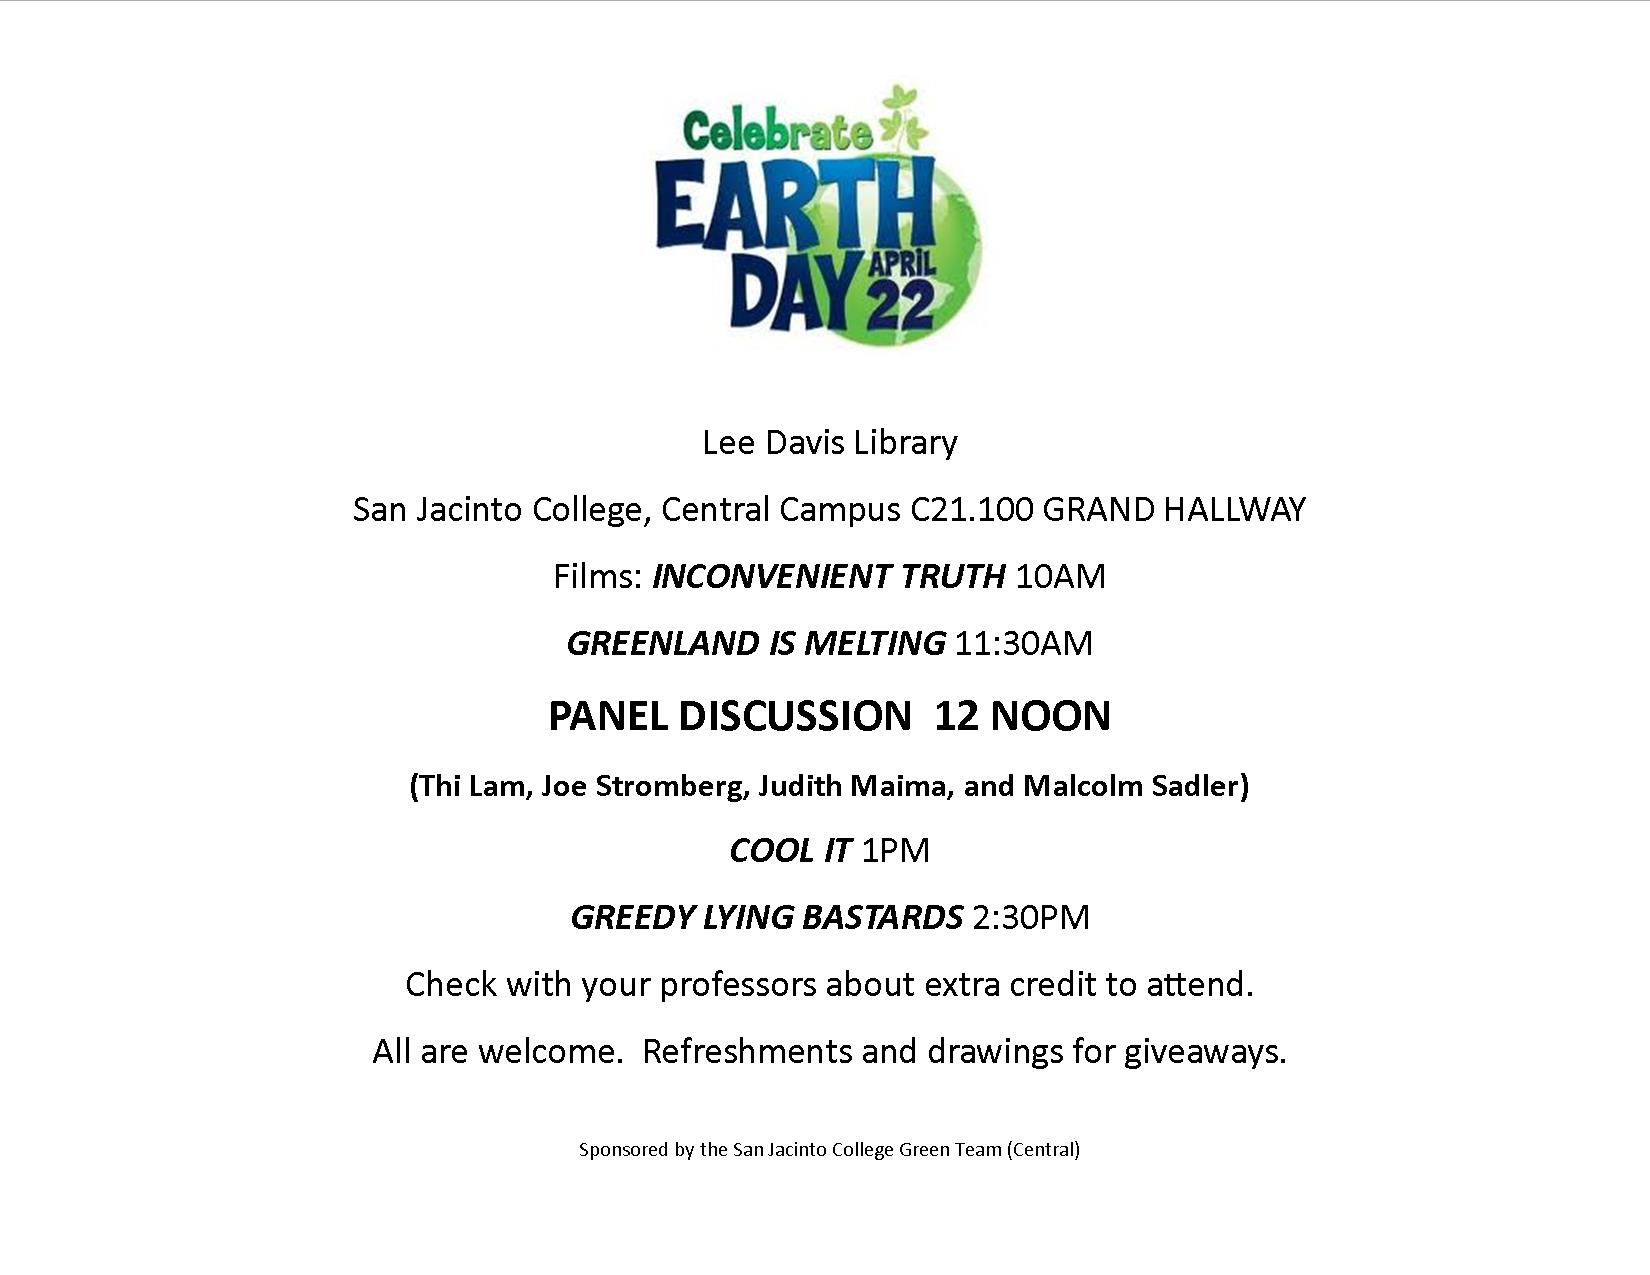 Earth Day 2015 flyer